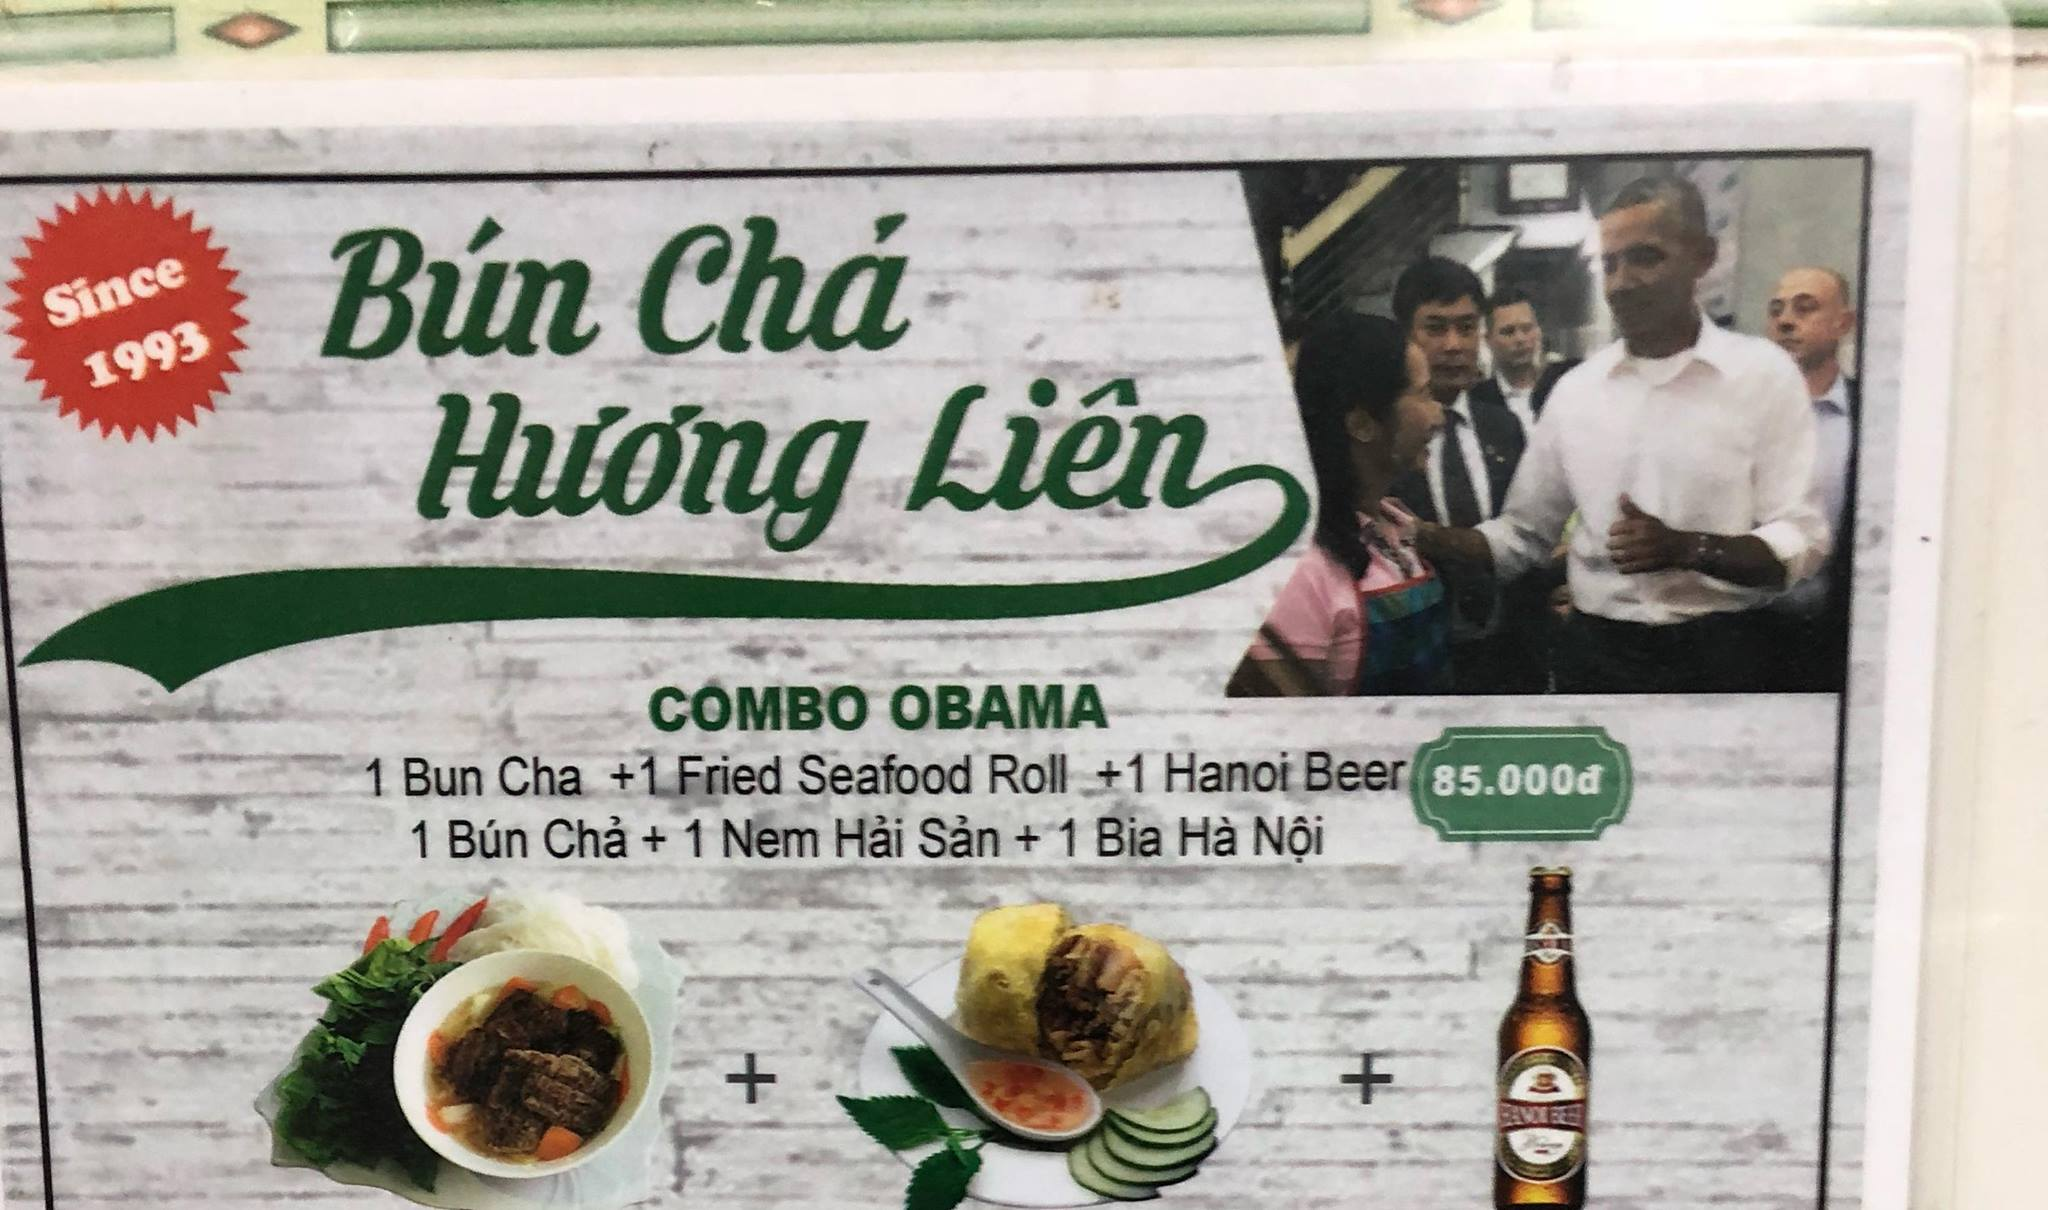 Photo of the menu at Bun Cha Huong Lien